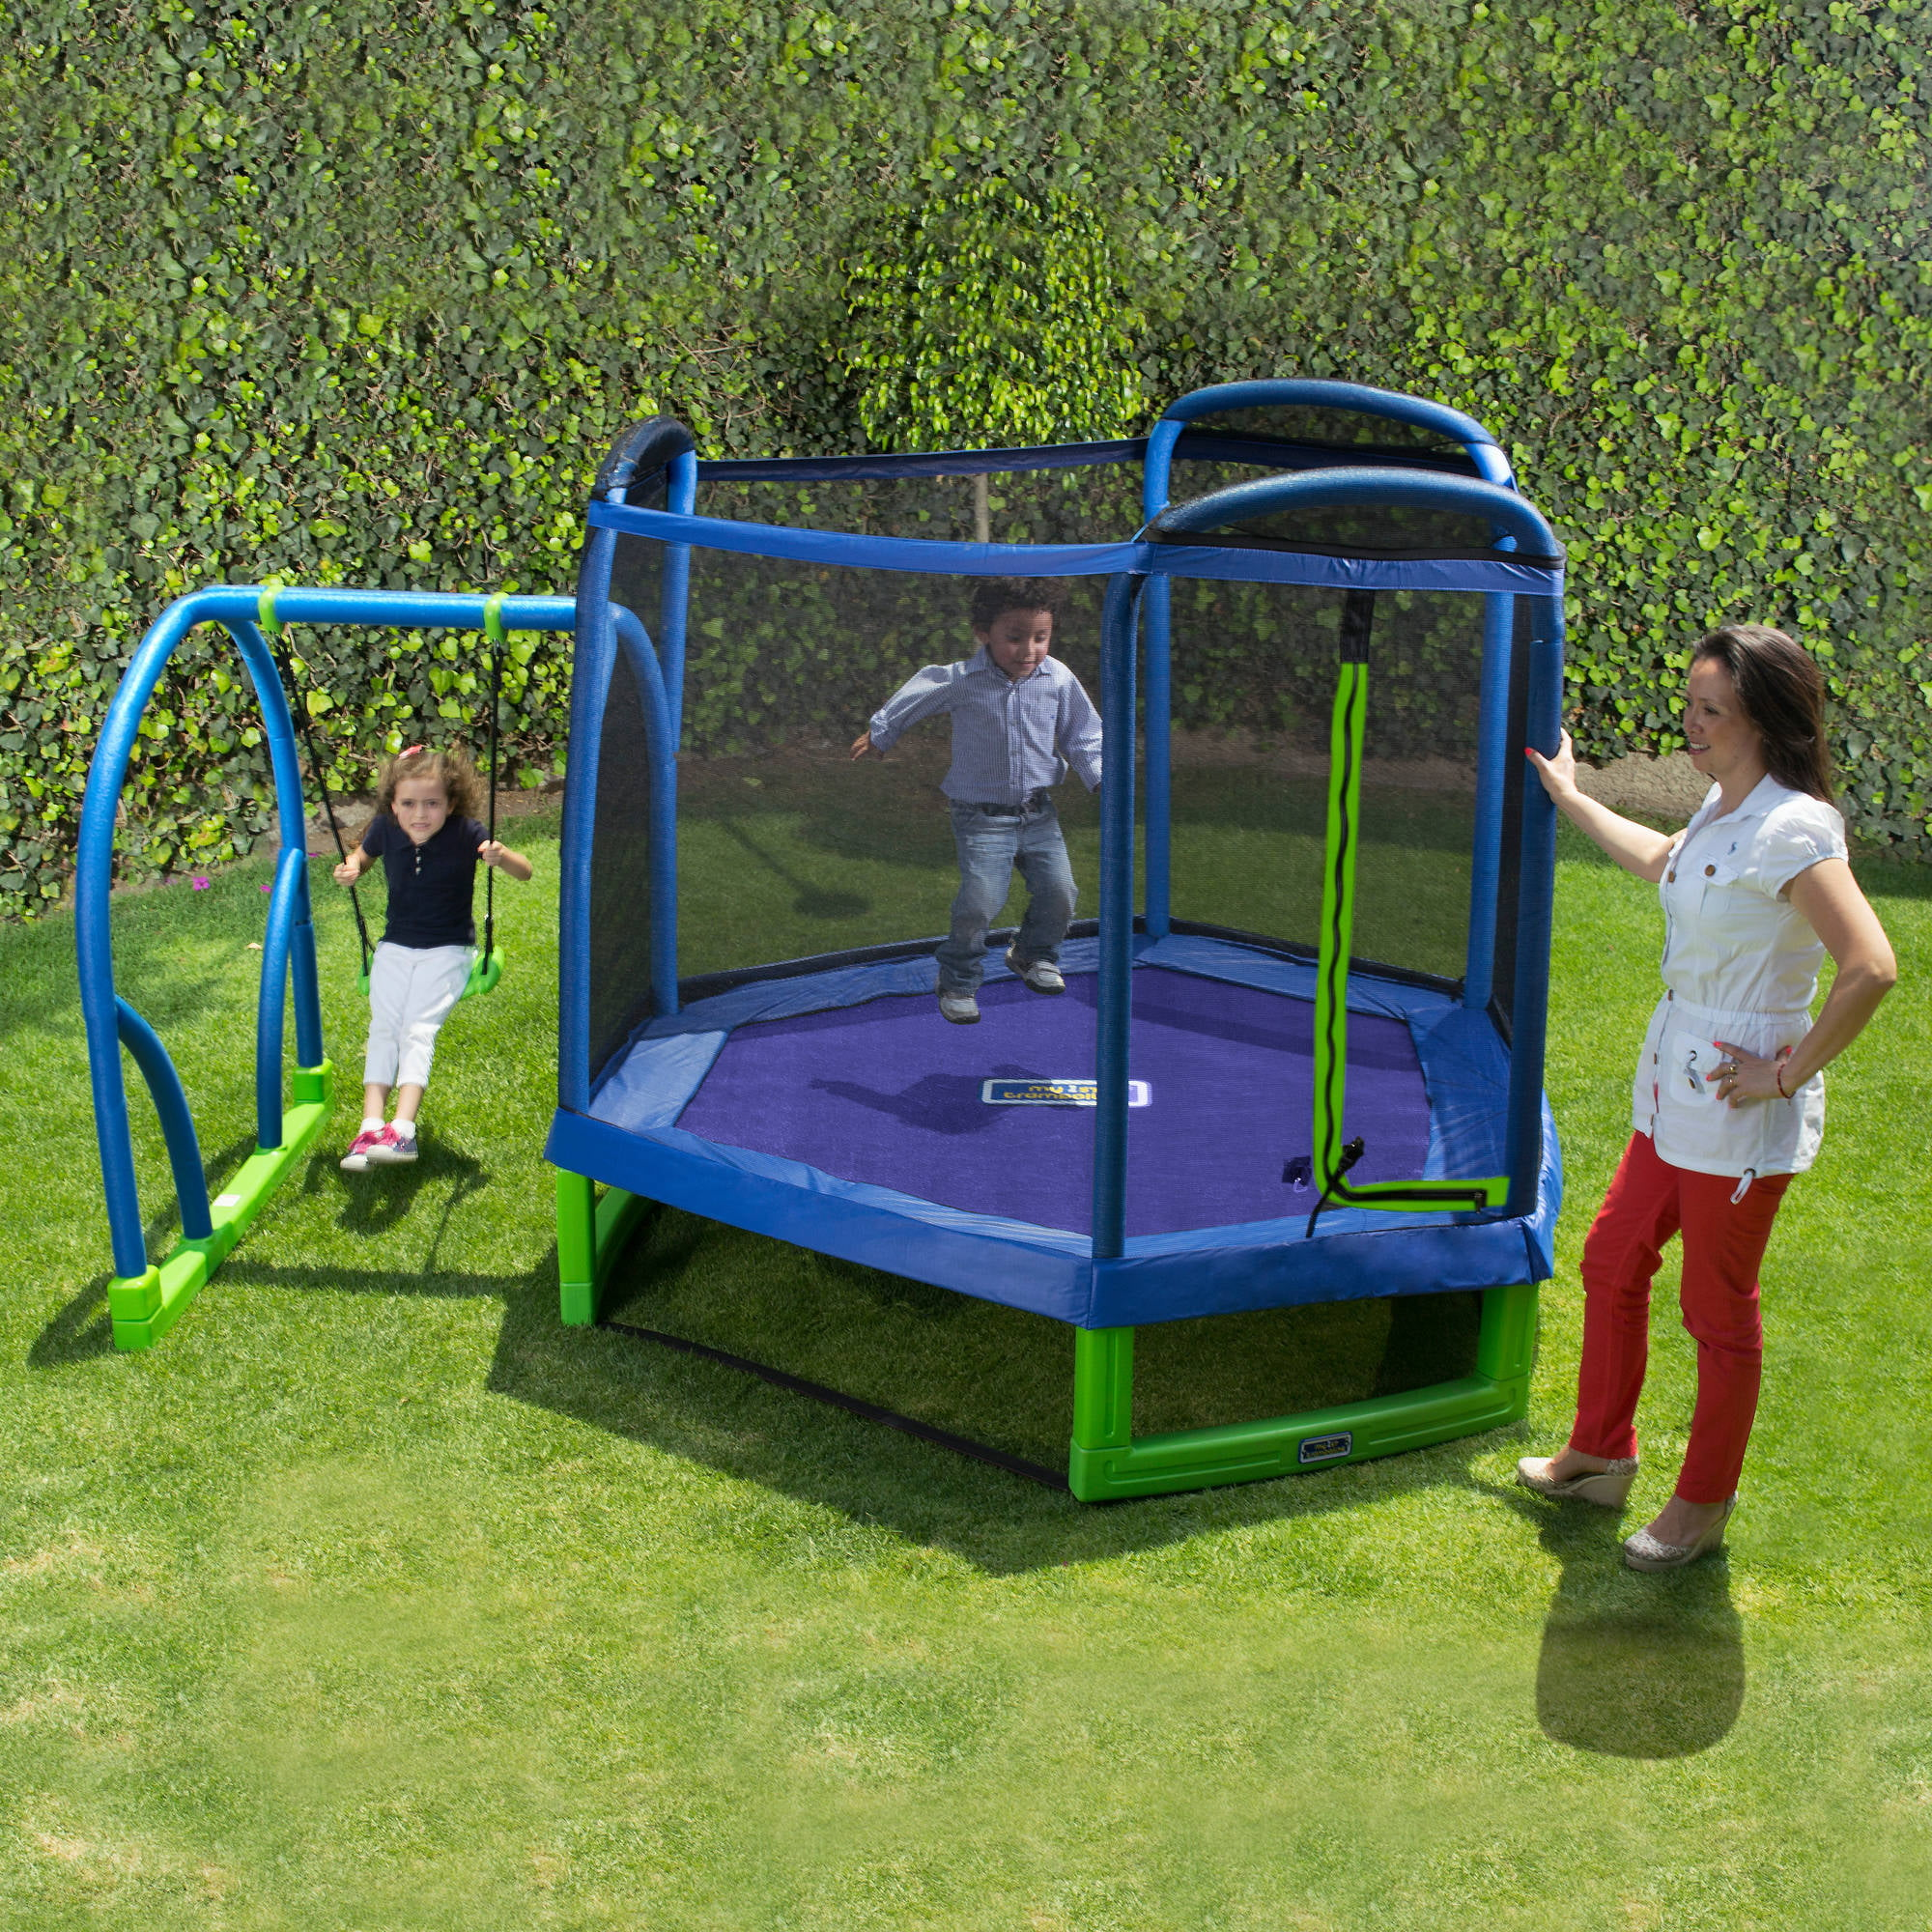 Bounce Pro My First Jump and Swing Walmart